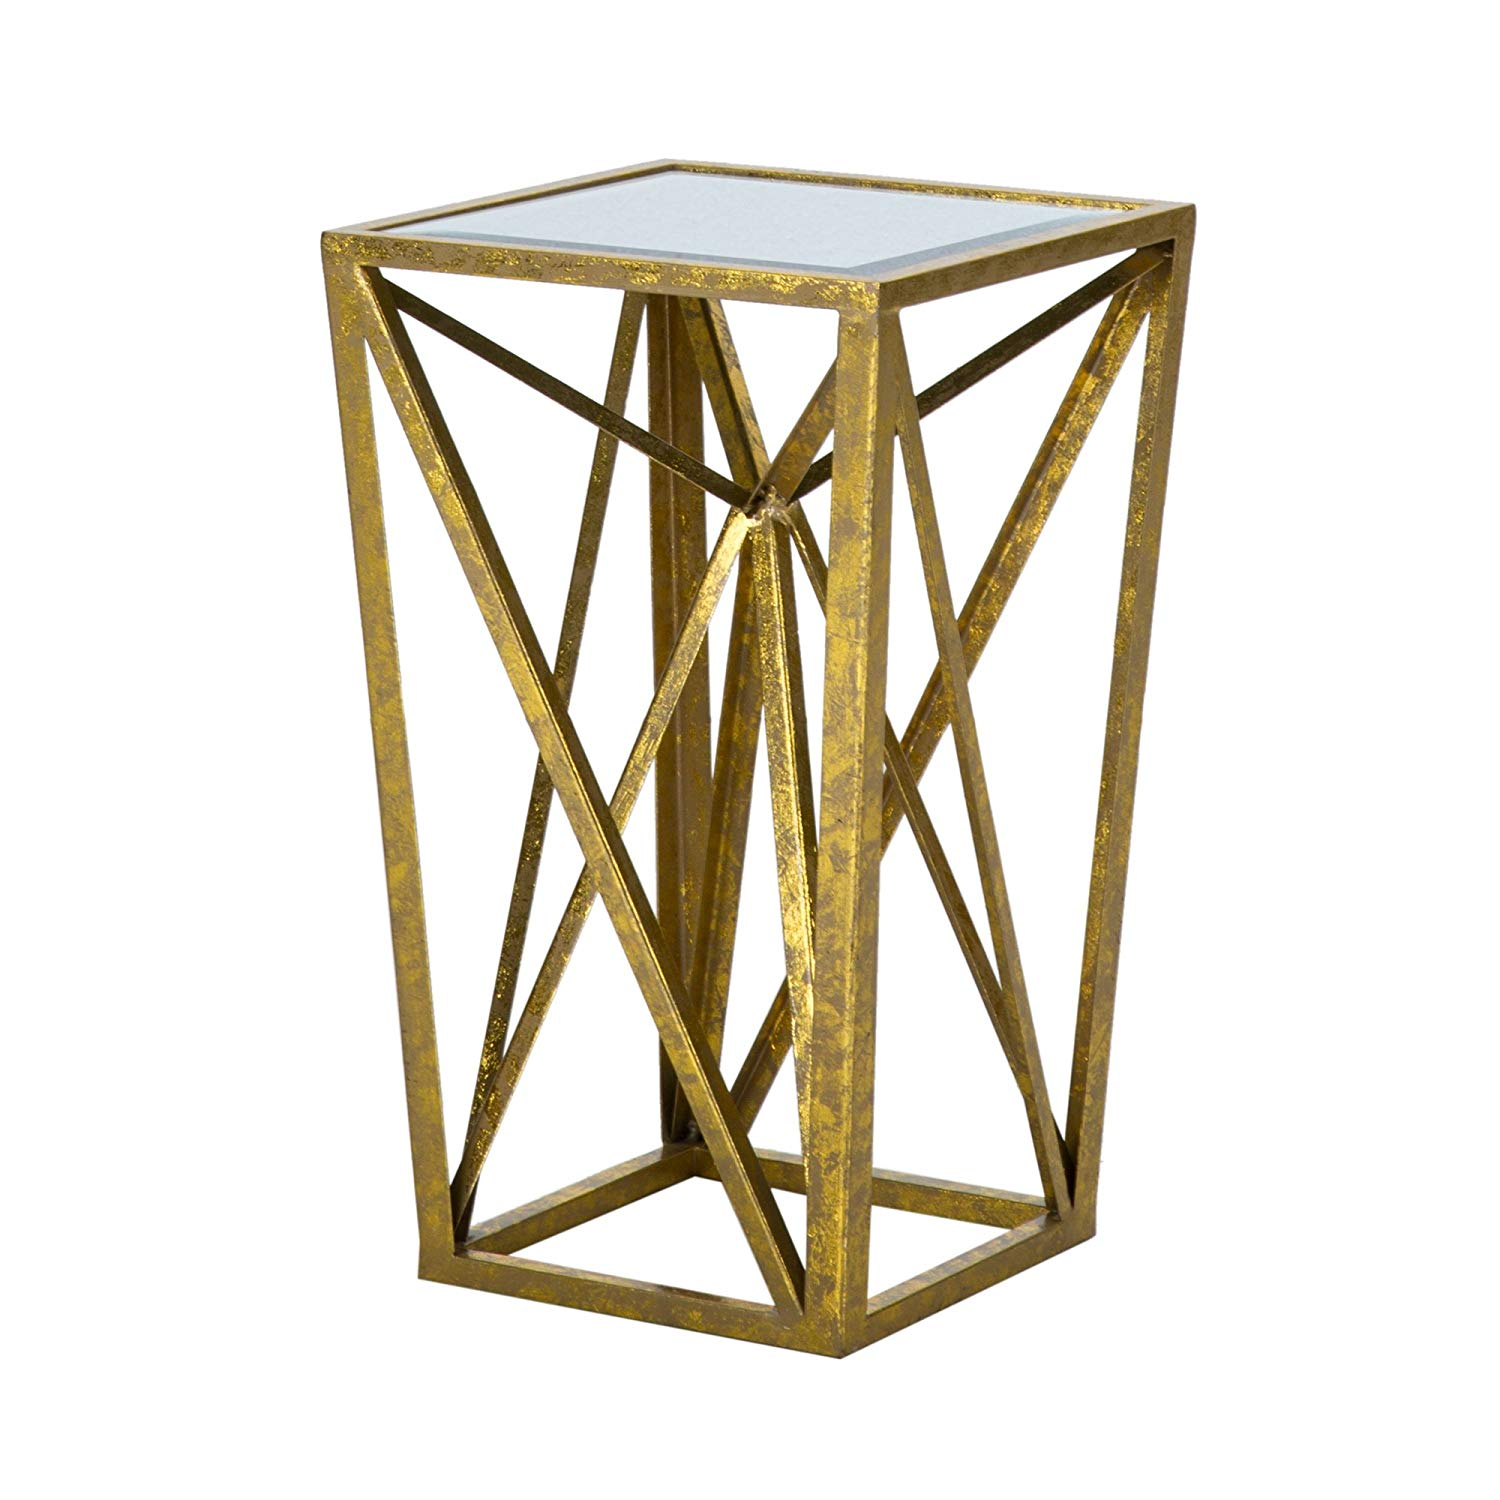 madison park zee accent tables mirror glass metal gold table side angular design modern style end piece top hollow round home wall decor ideas entry for small spaces accents